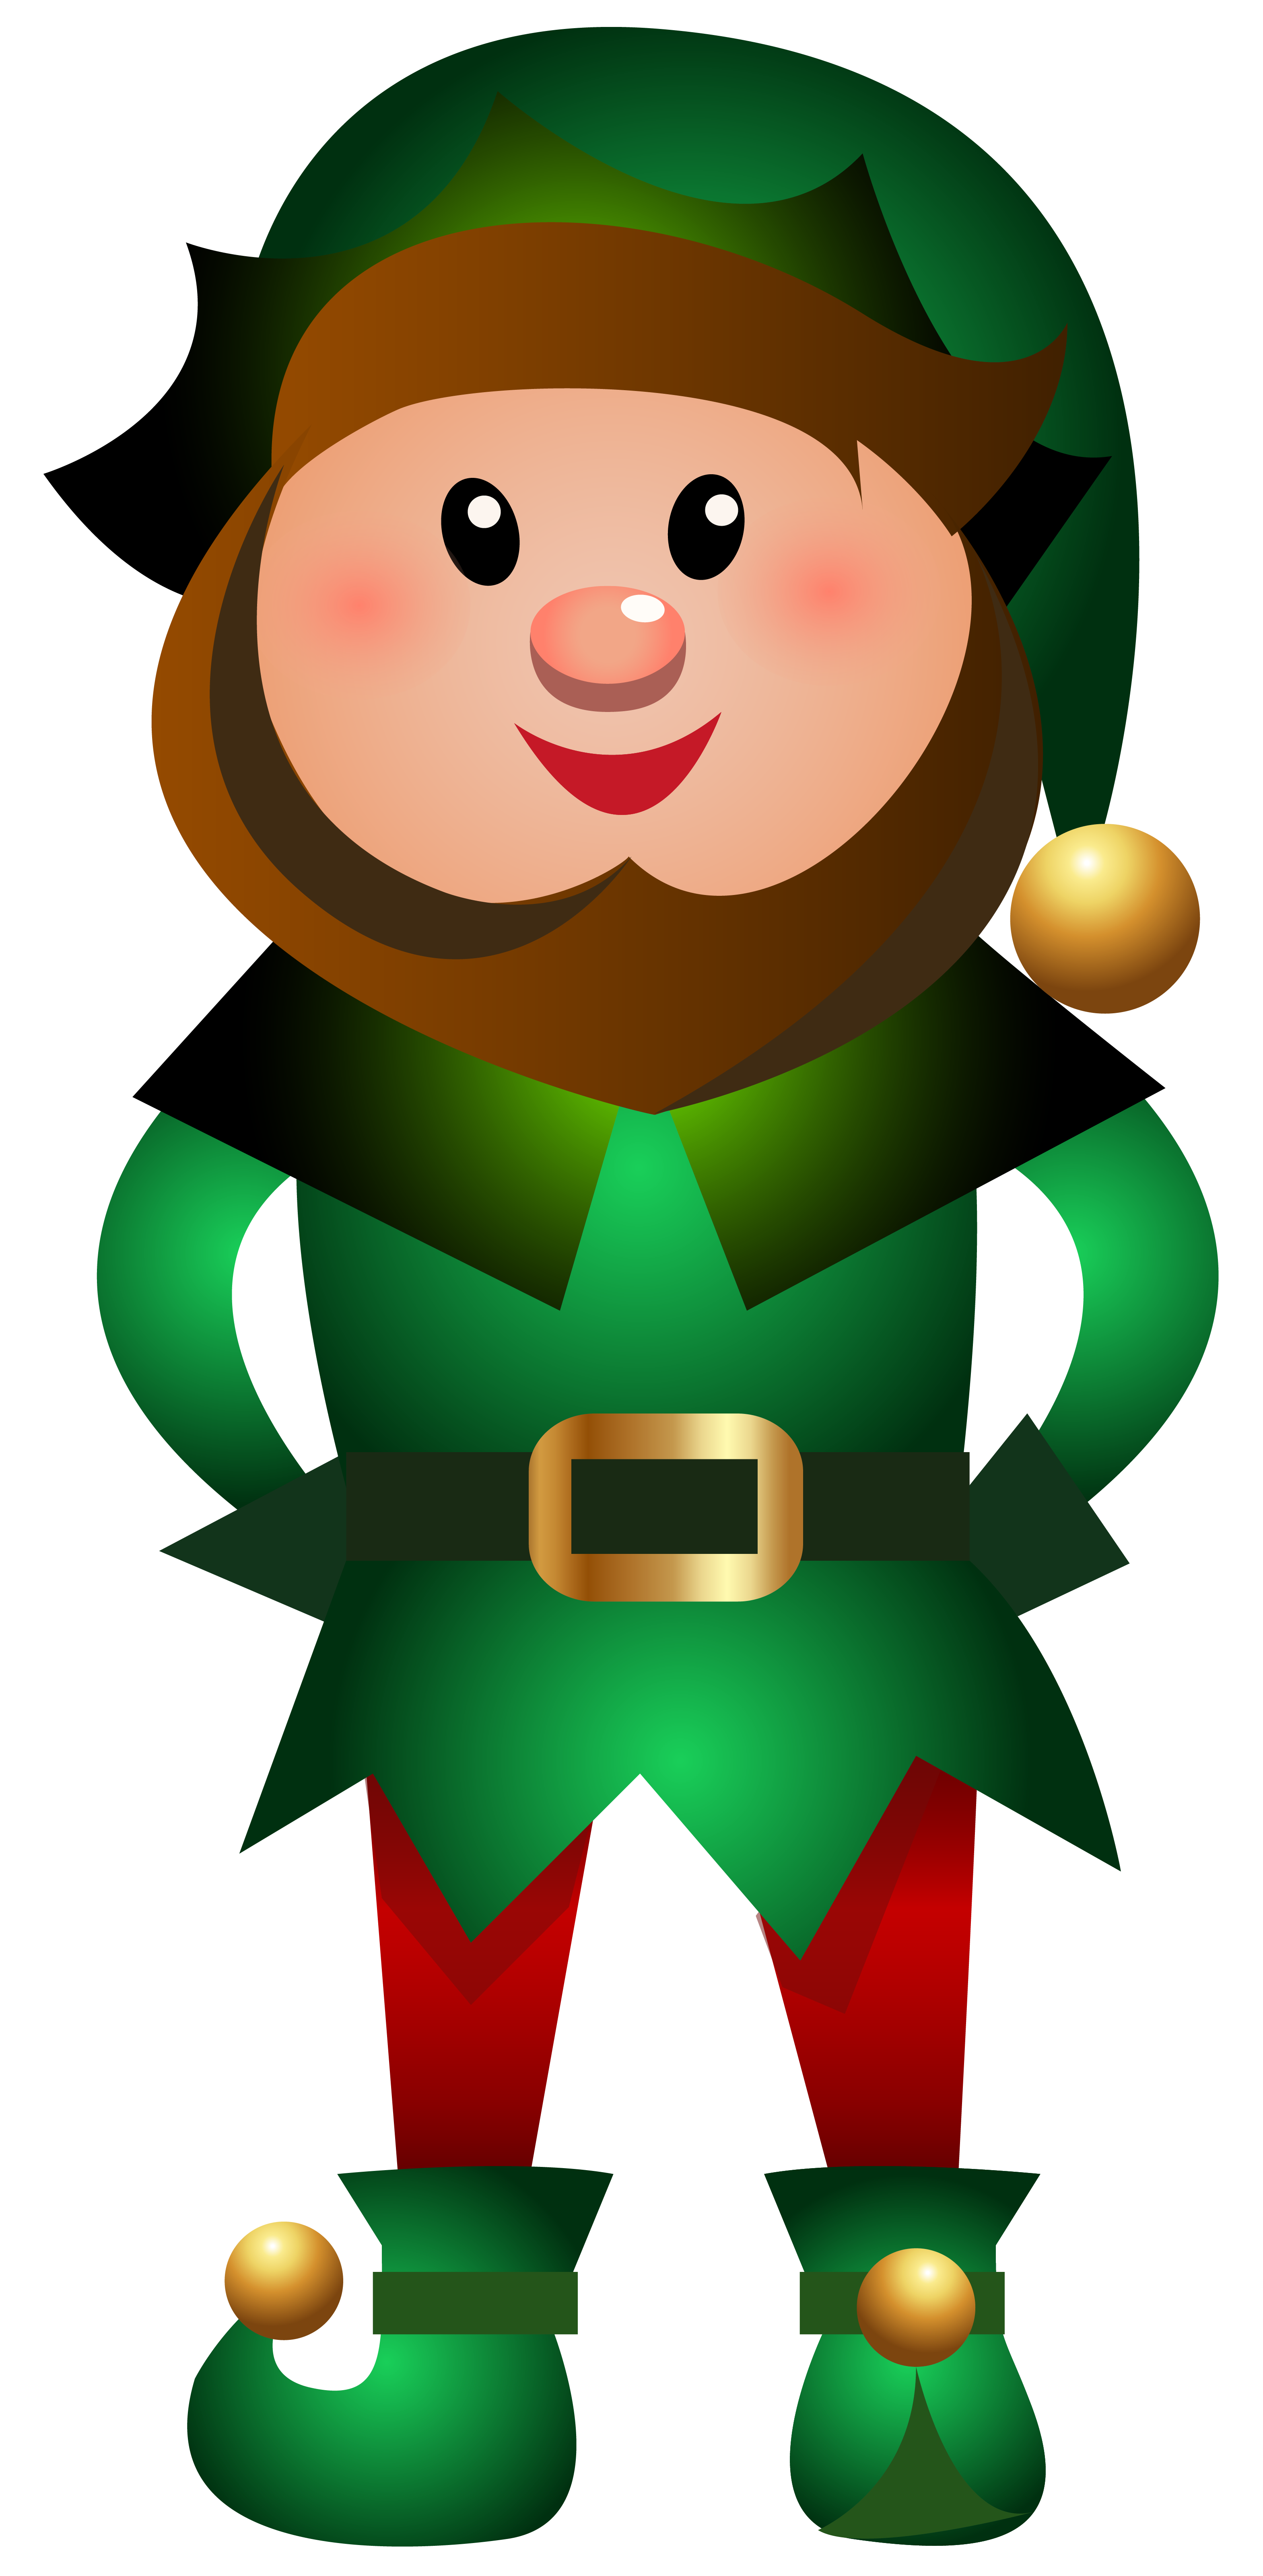 Elves Transparent Picture Hd Png image #45822